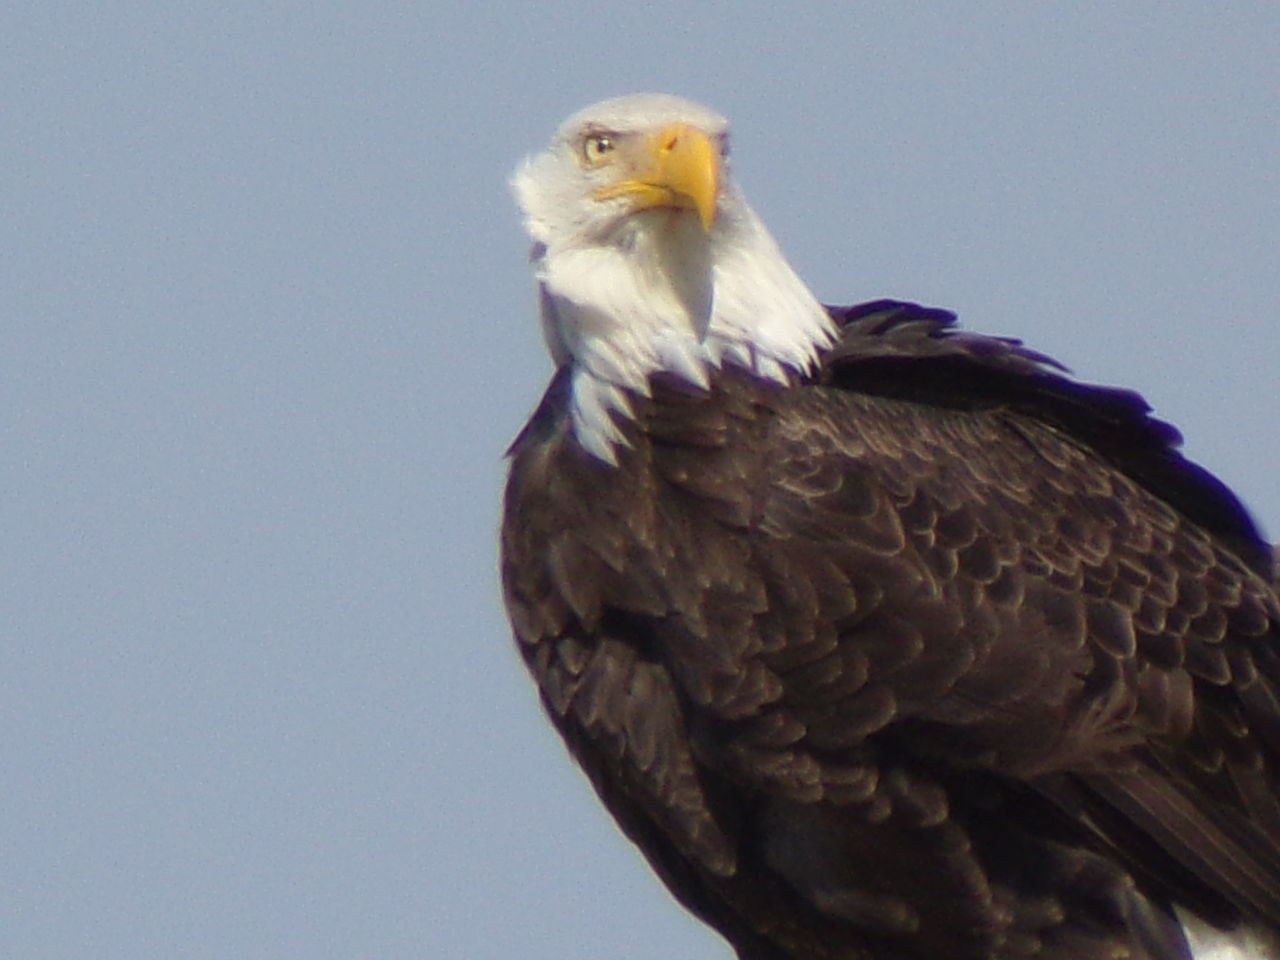 animal themes, bird, animal, one animal, animal wildlife, vertebrate, animals in the wild, clear sky, bird of prey, low angle view, sky, eagle, nature, no people, copy space, day, eagle - bird, beak, close-up, blue